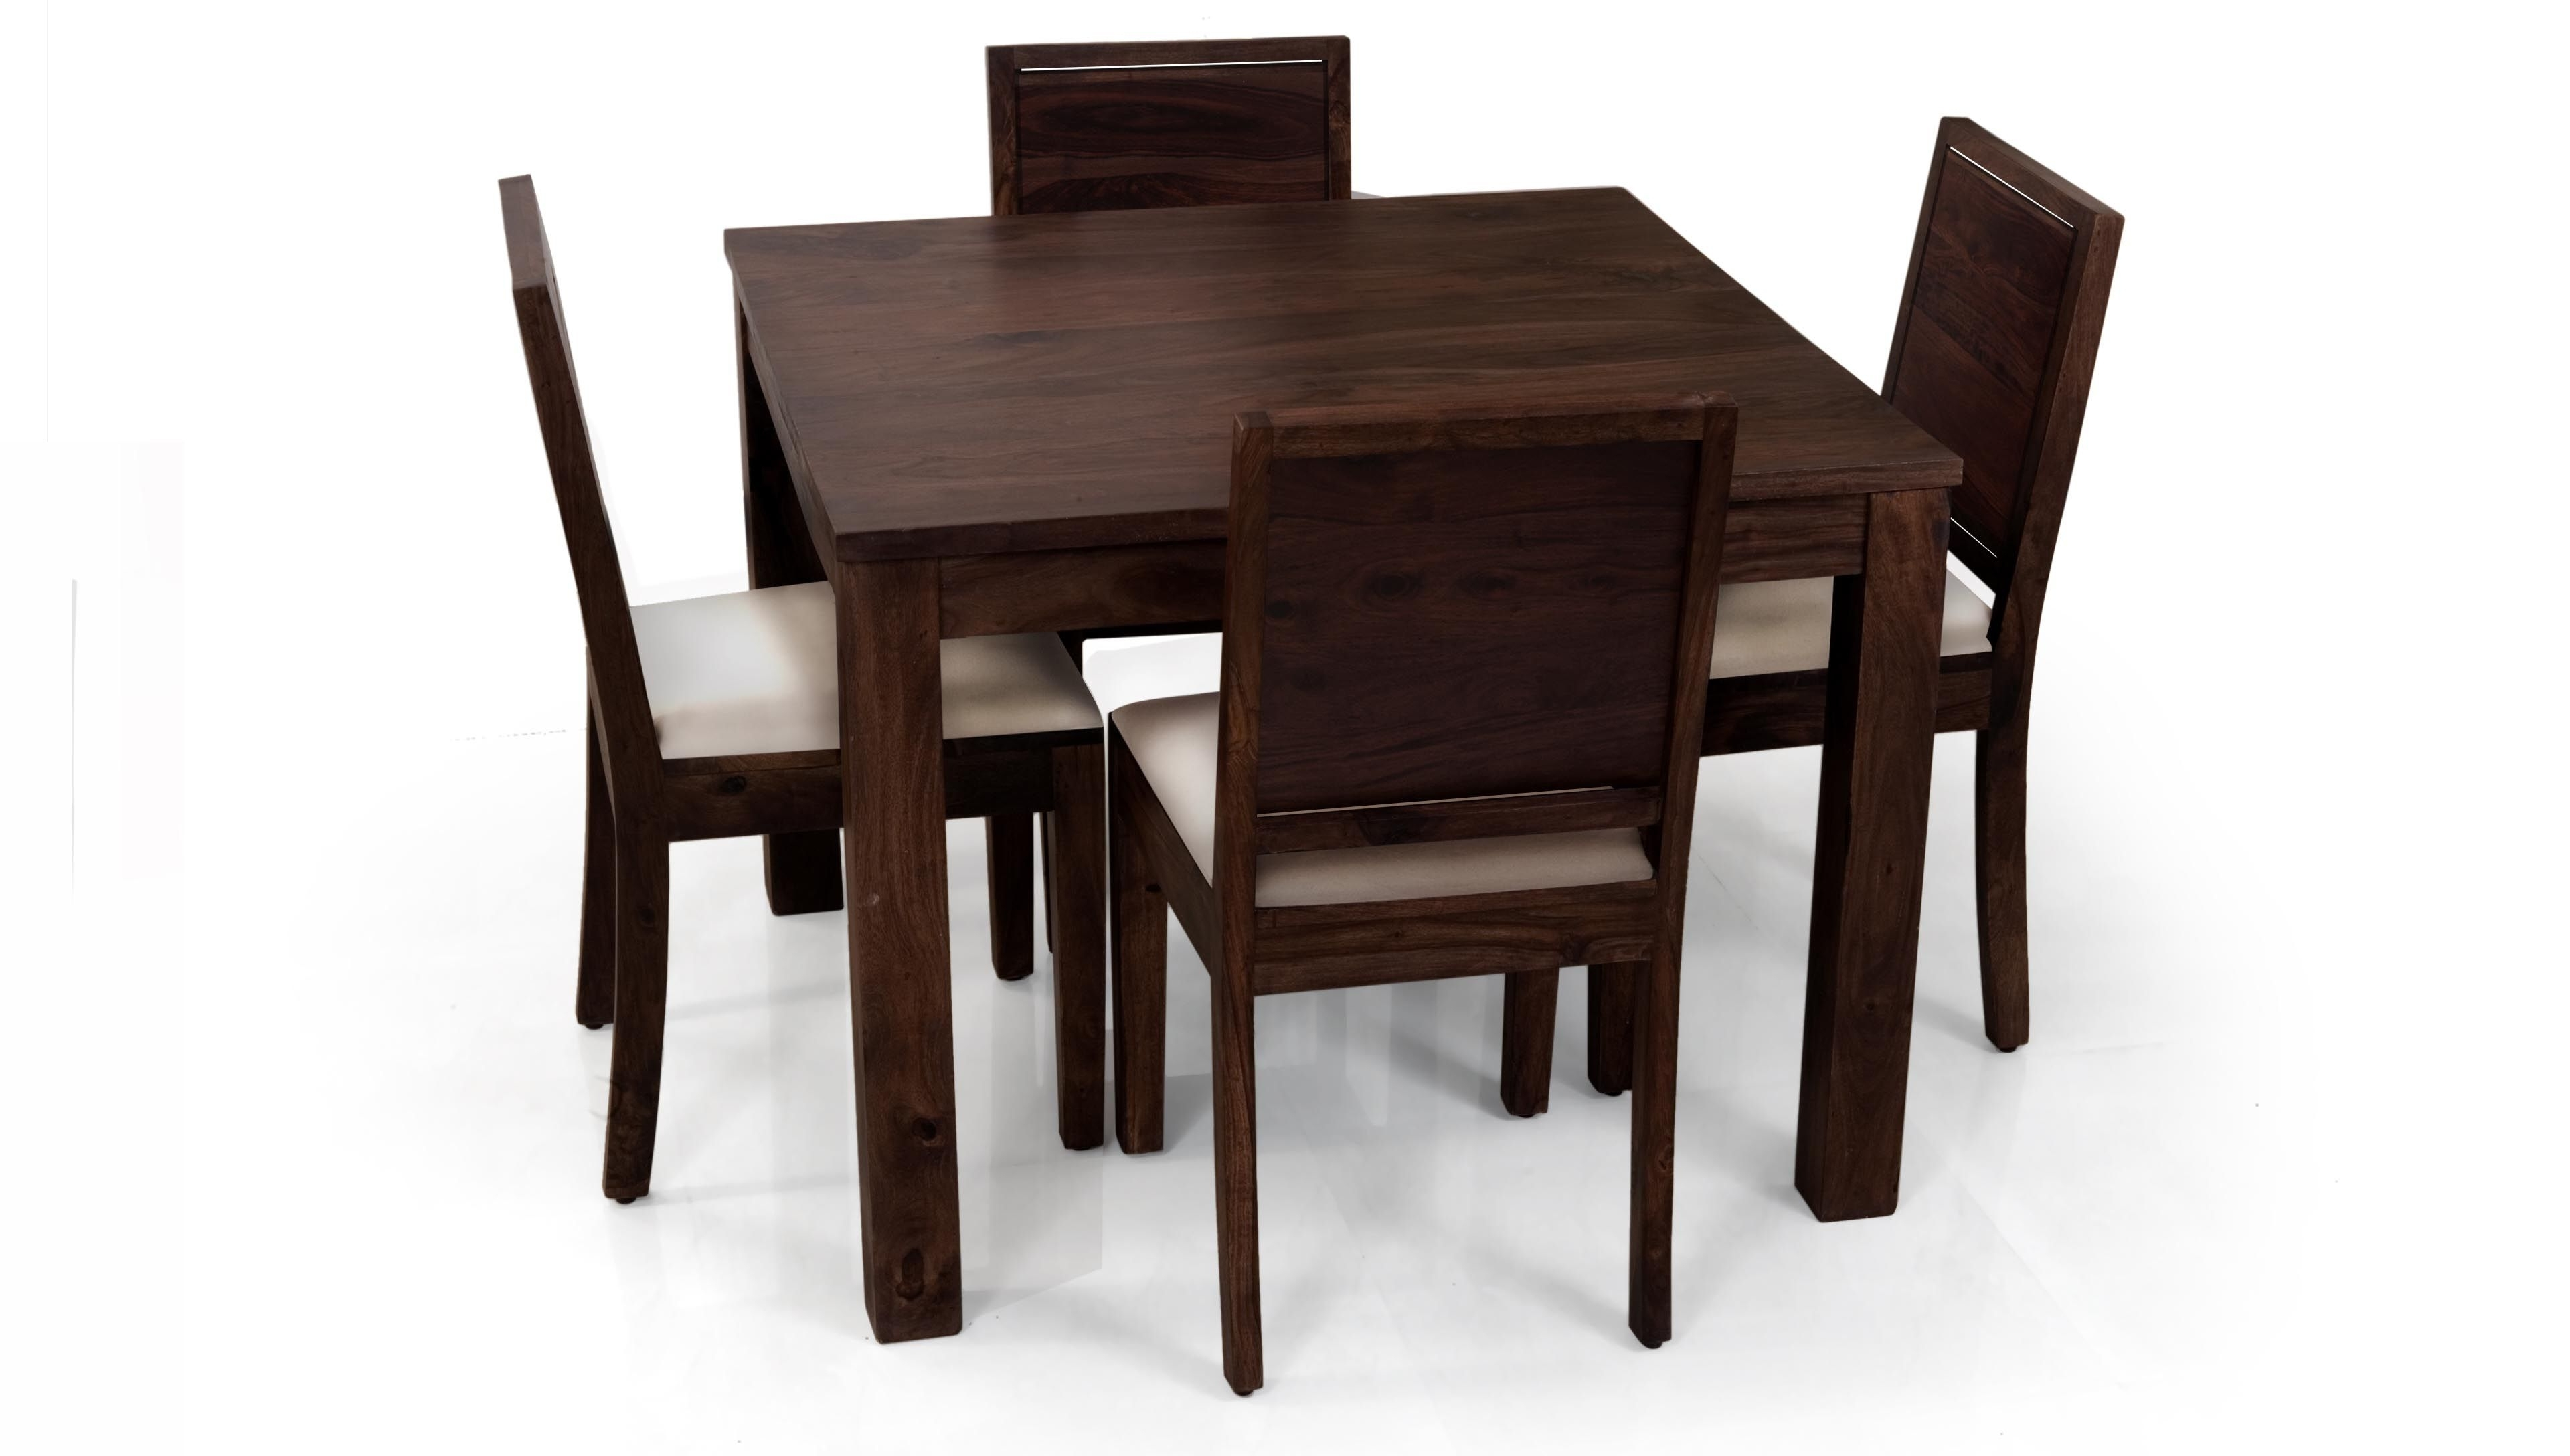 Newest Dark Wood Square Dining Tables Intended For And Decor Your Dining Room With Awesome Design Ever Every Table (Gallery 4 of 25)